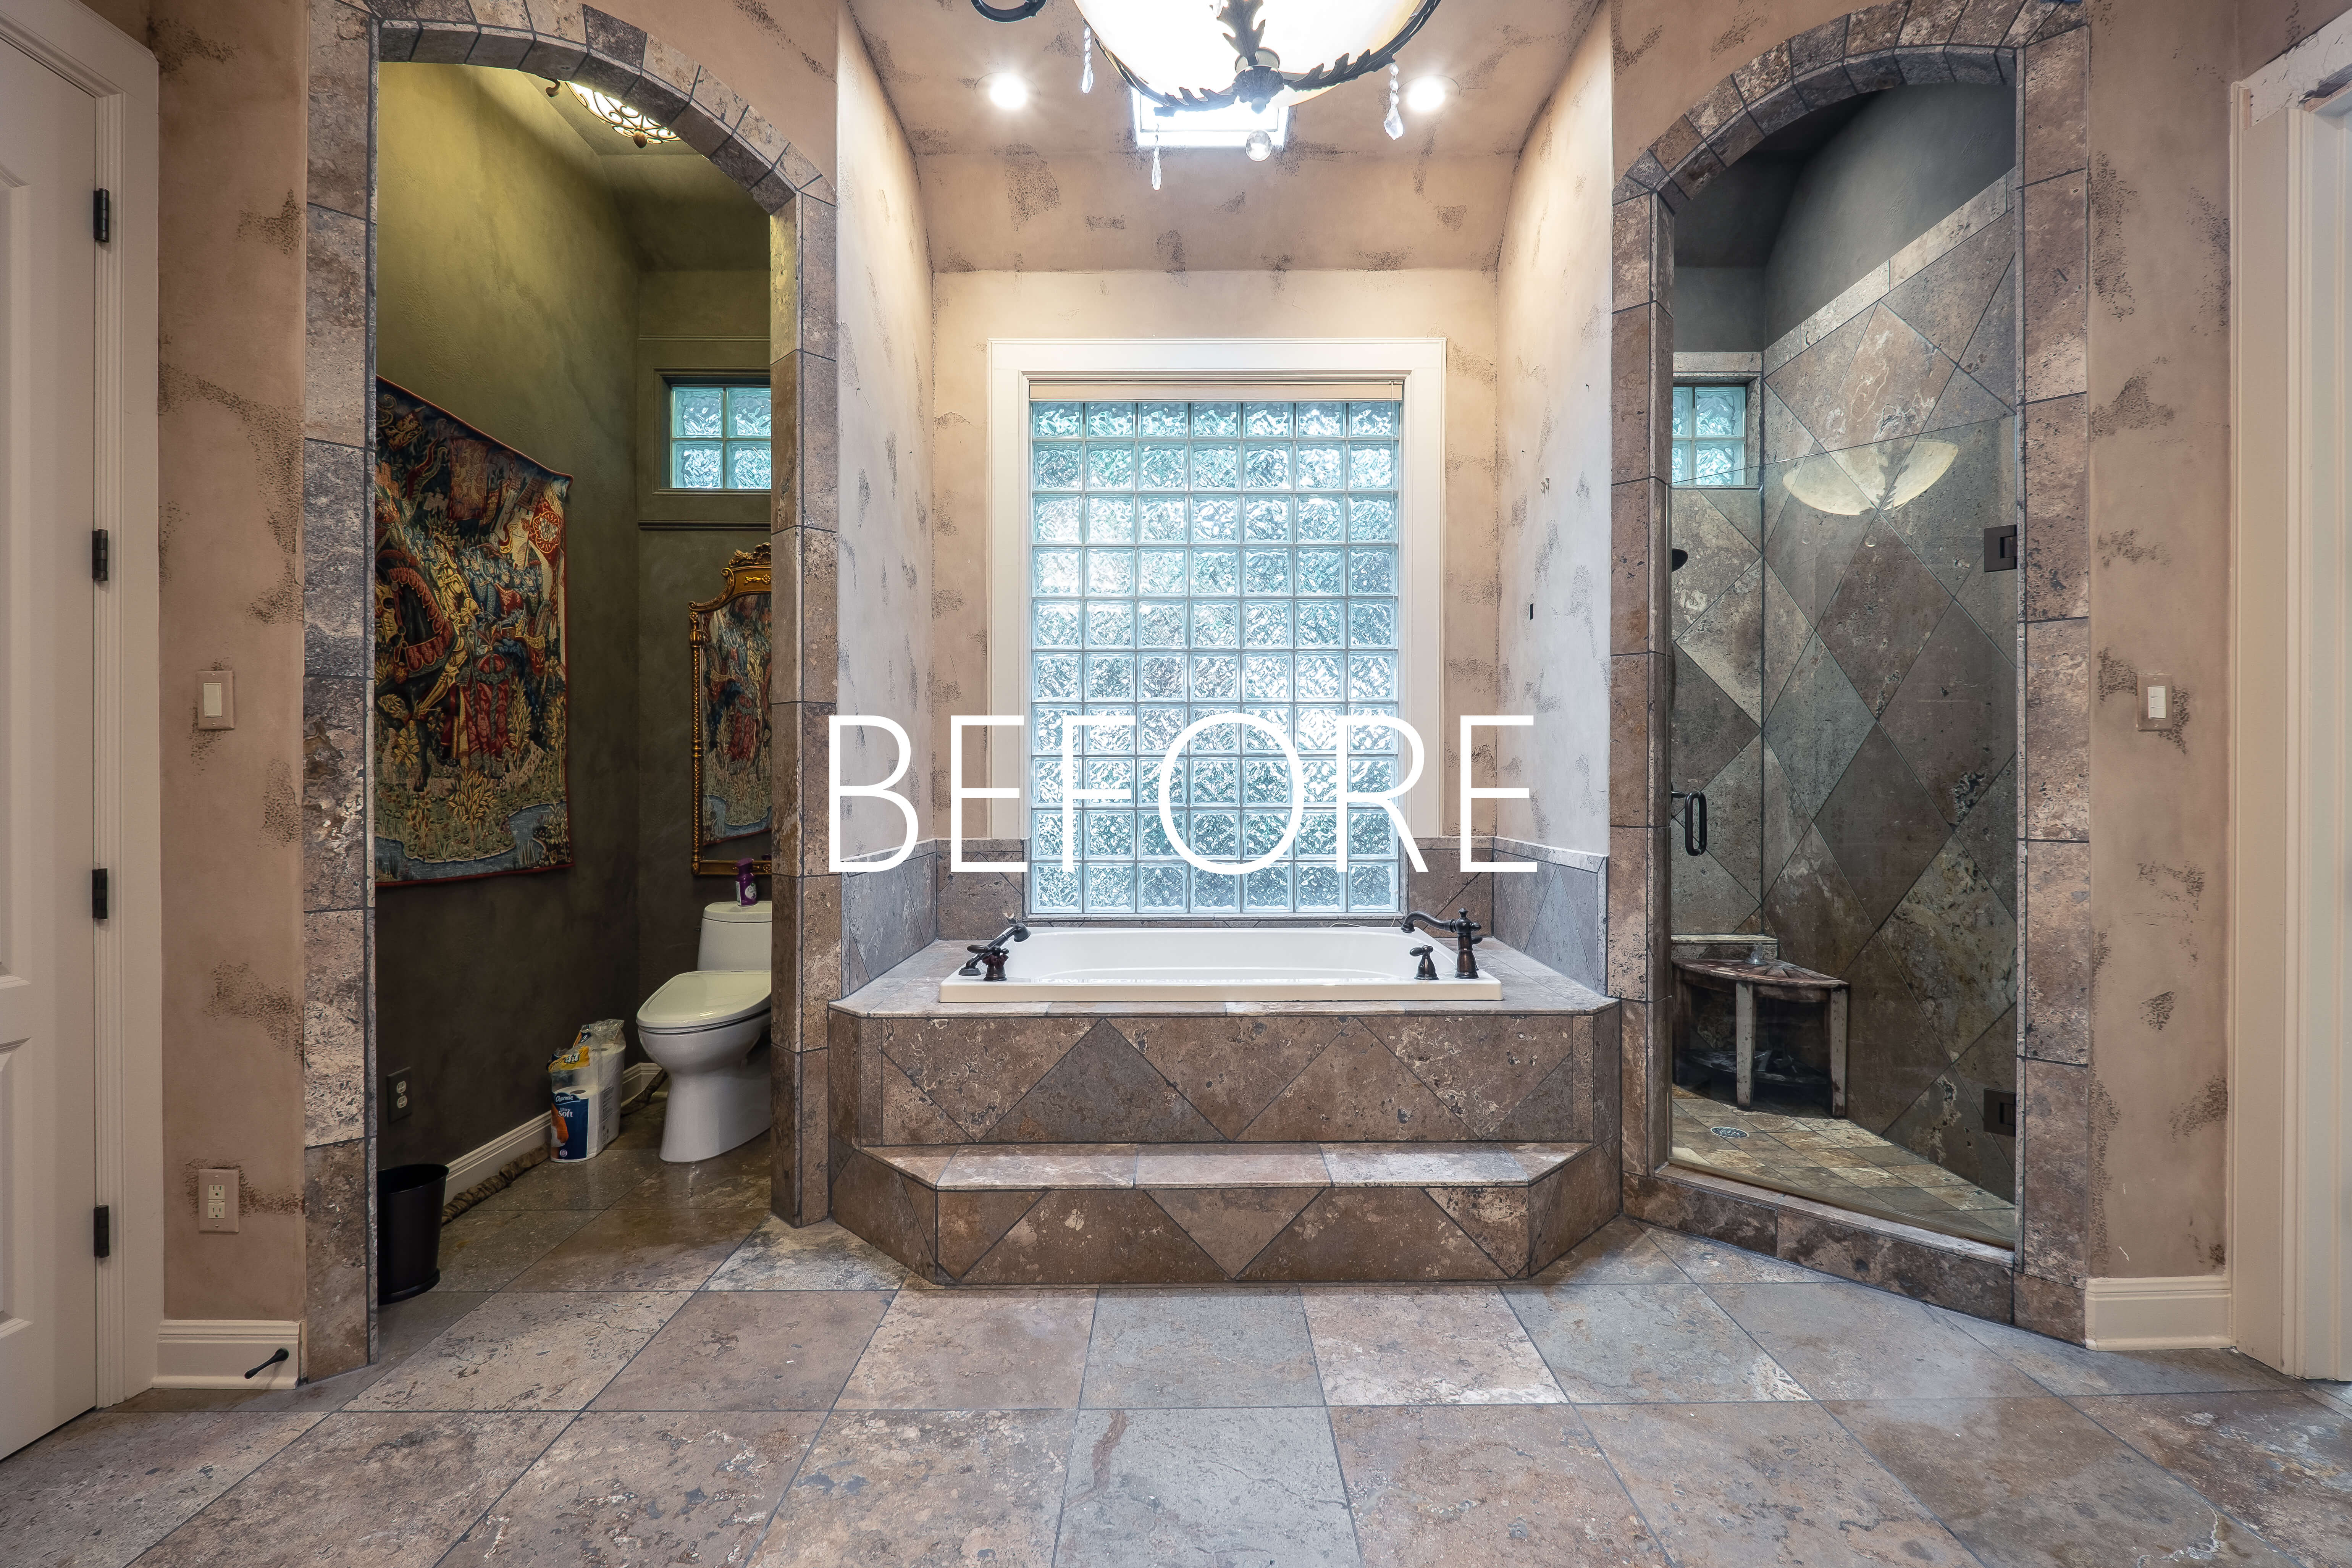 Bathroom Remodeling Pics, Kitchen And Bathroom Remodeling Austin Tx